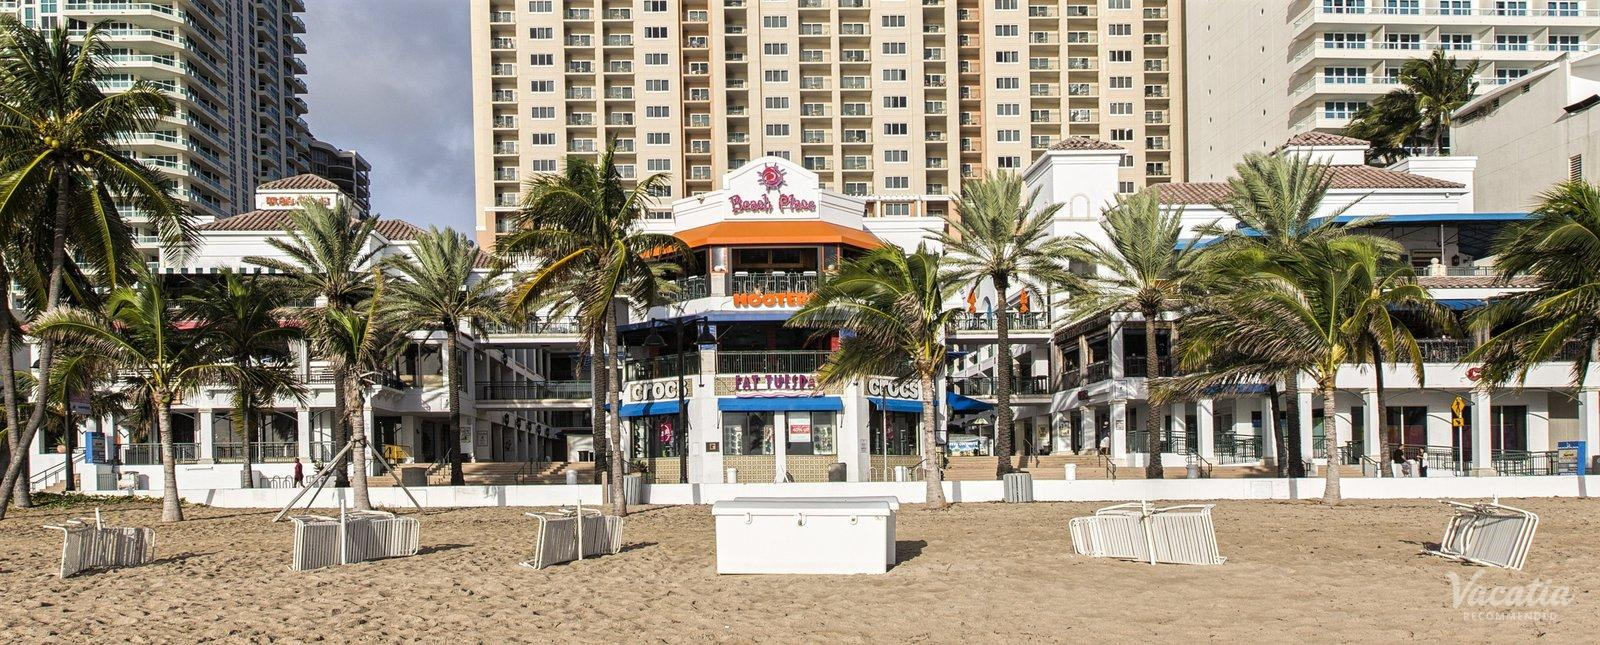 Vacation Rentals Beach Fort Lauderdale